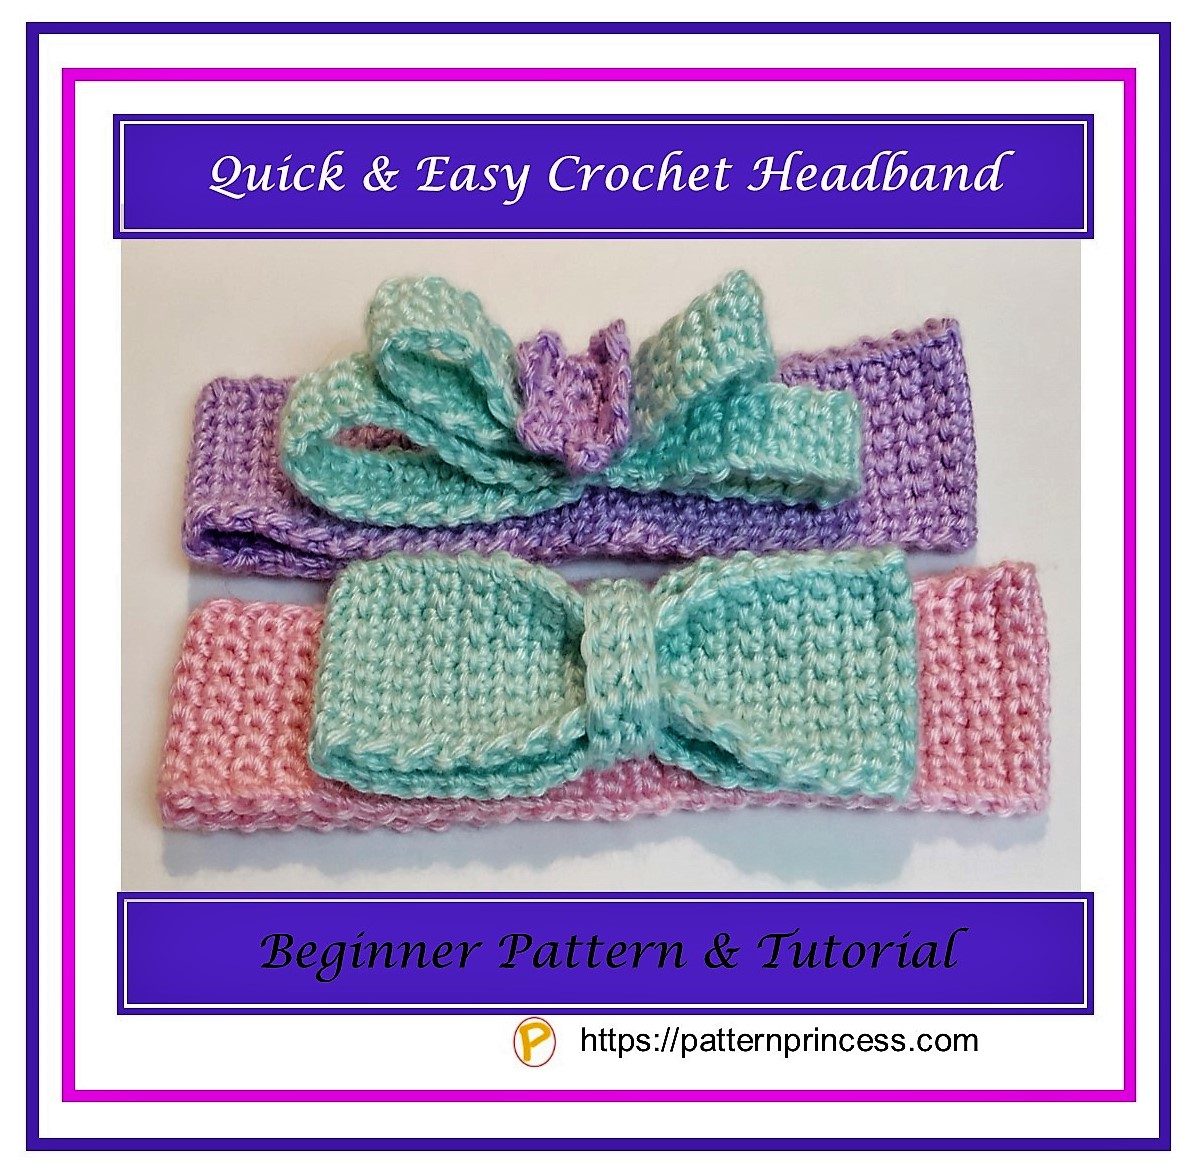 Quick and Easy Crochet Headband 1